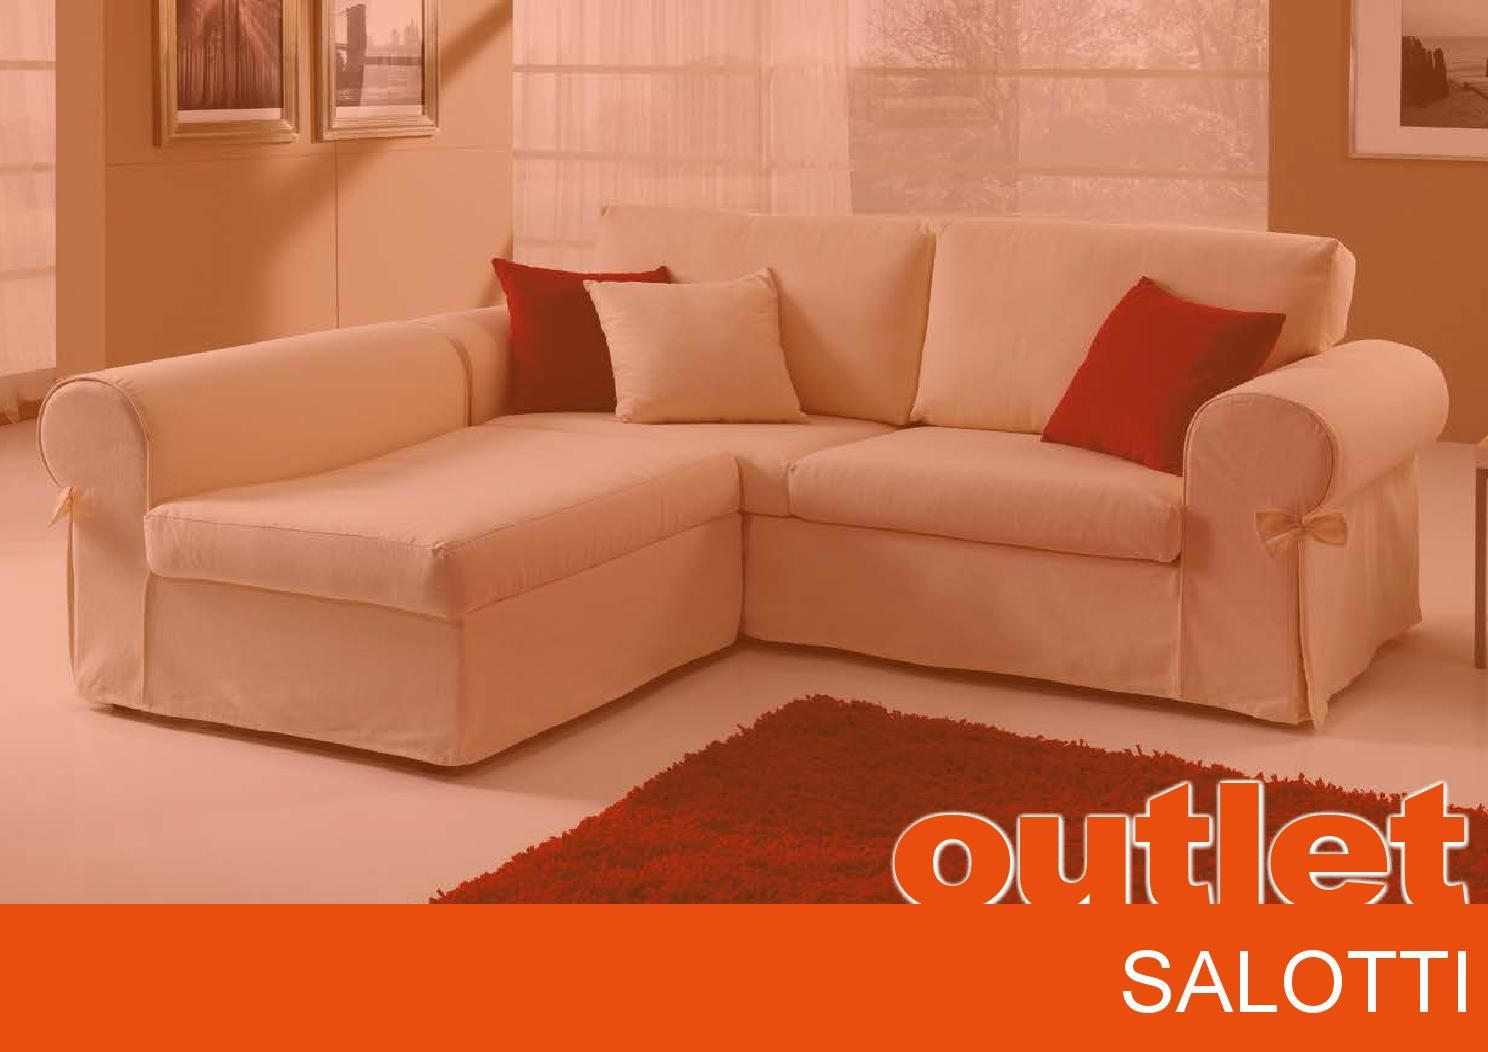 Asta Mobili Outlet Salotti | Outlets